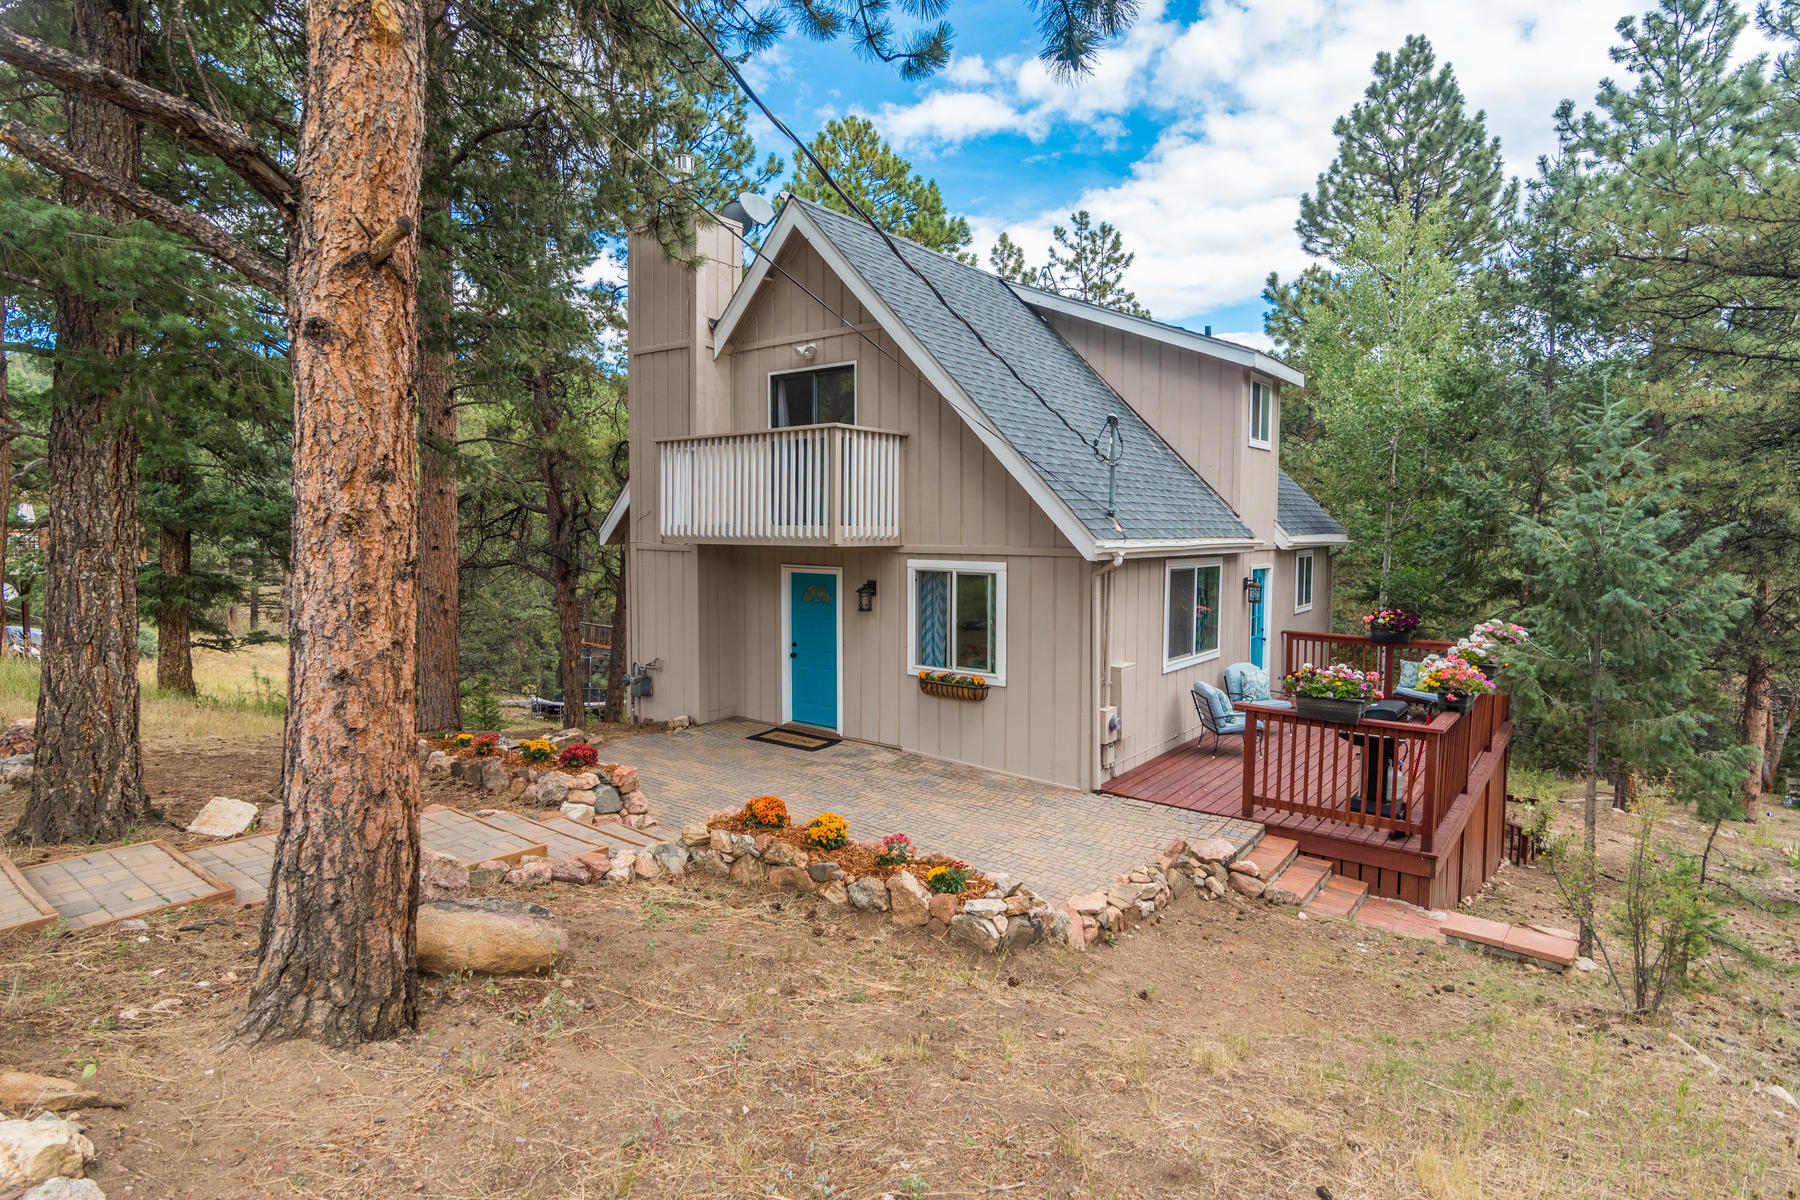 Single Family Homes for Active at Adorable cottage nestled in the mountains of Bailey 476 North Hill Drive Bailey, Colorado 80421 United States